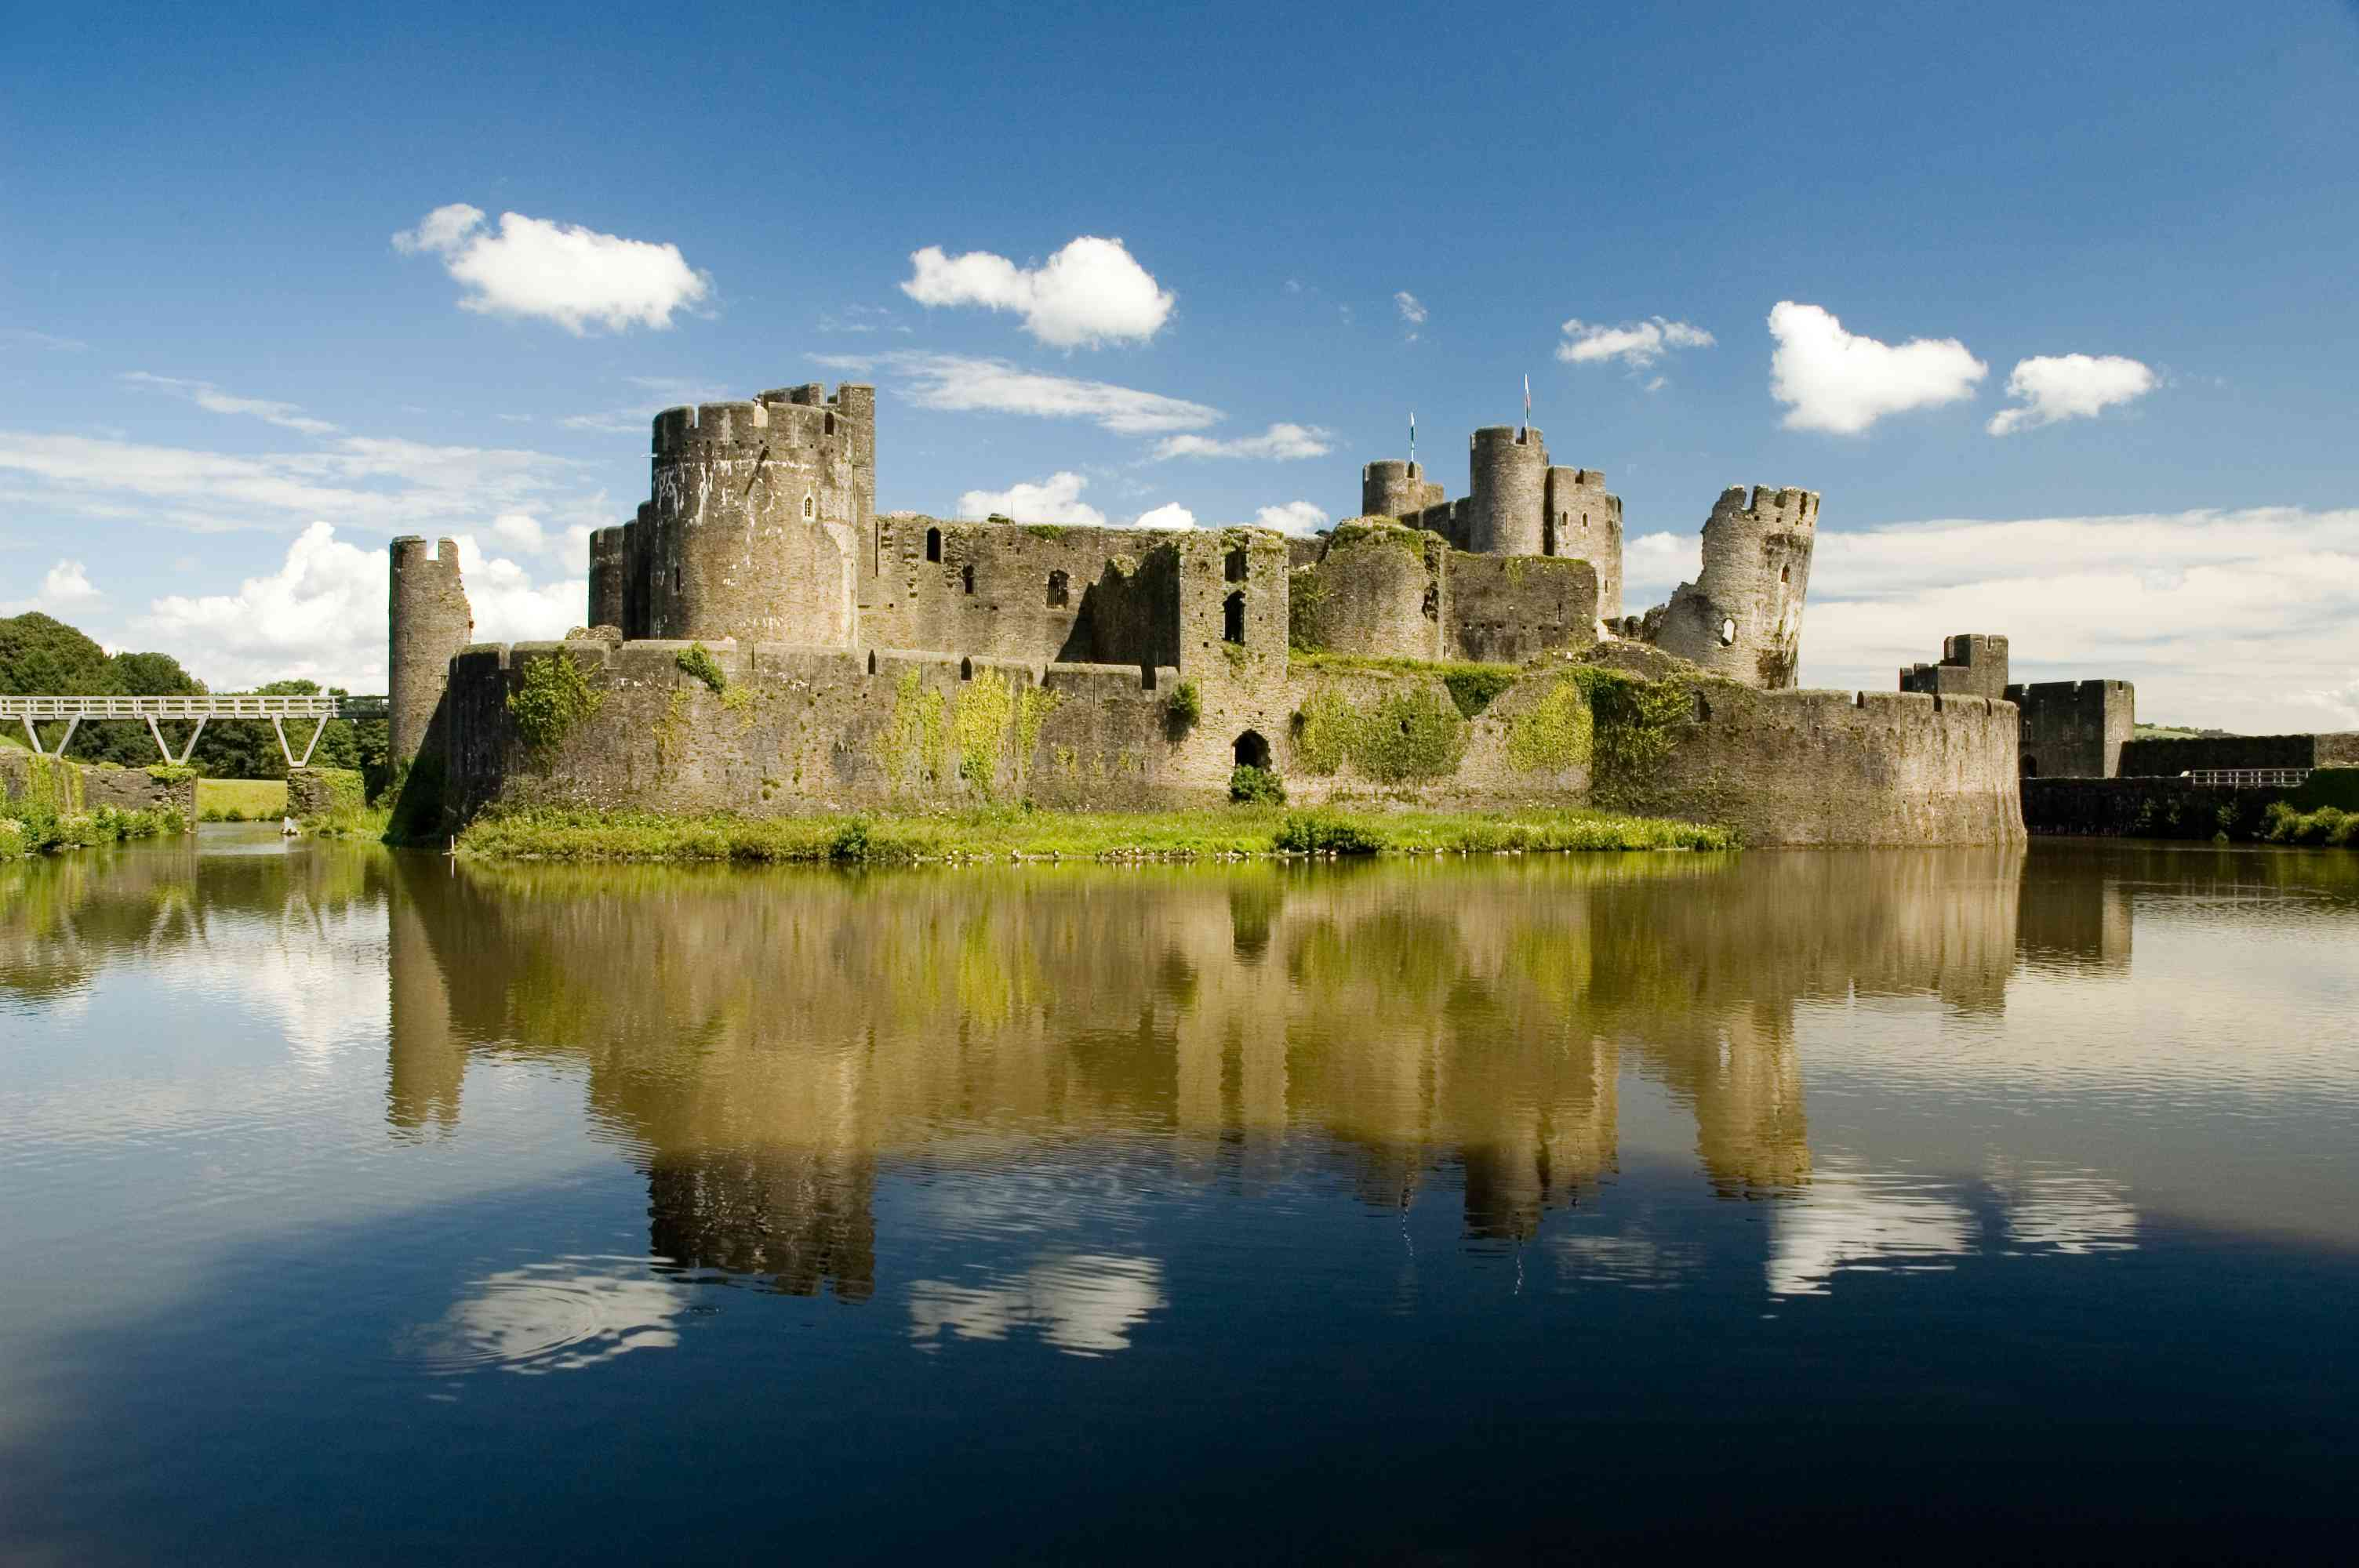 Wales Travel Costs & Prices - Castles, Snowdonia, and